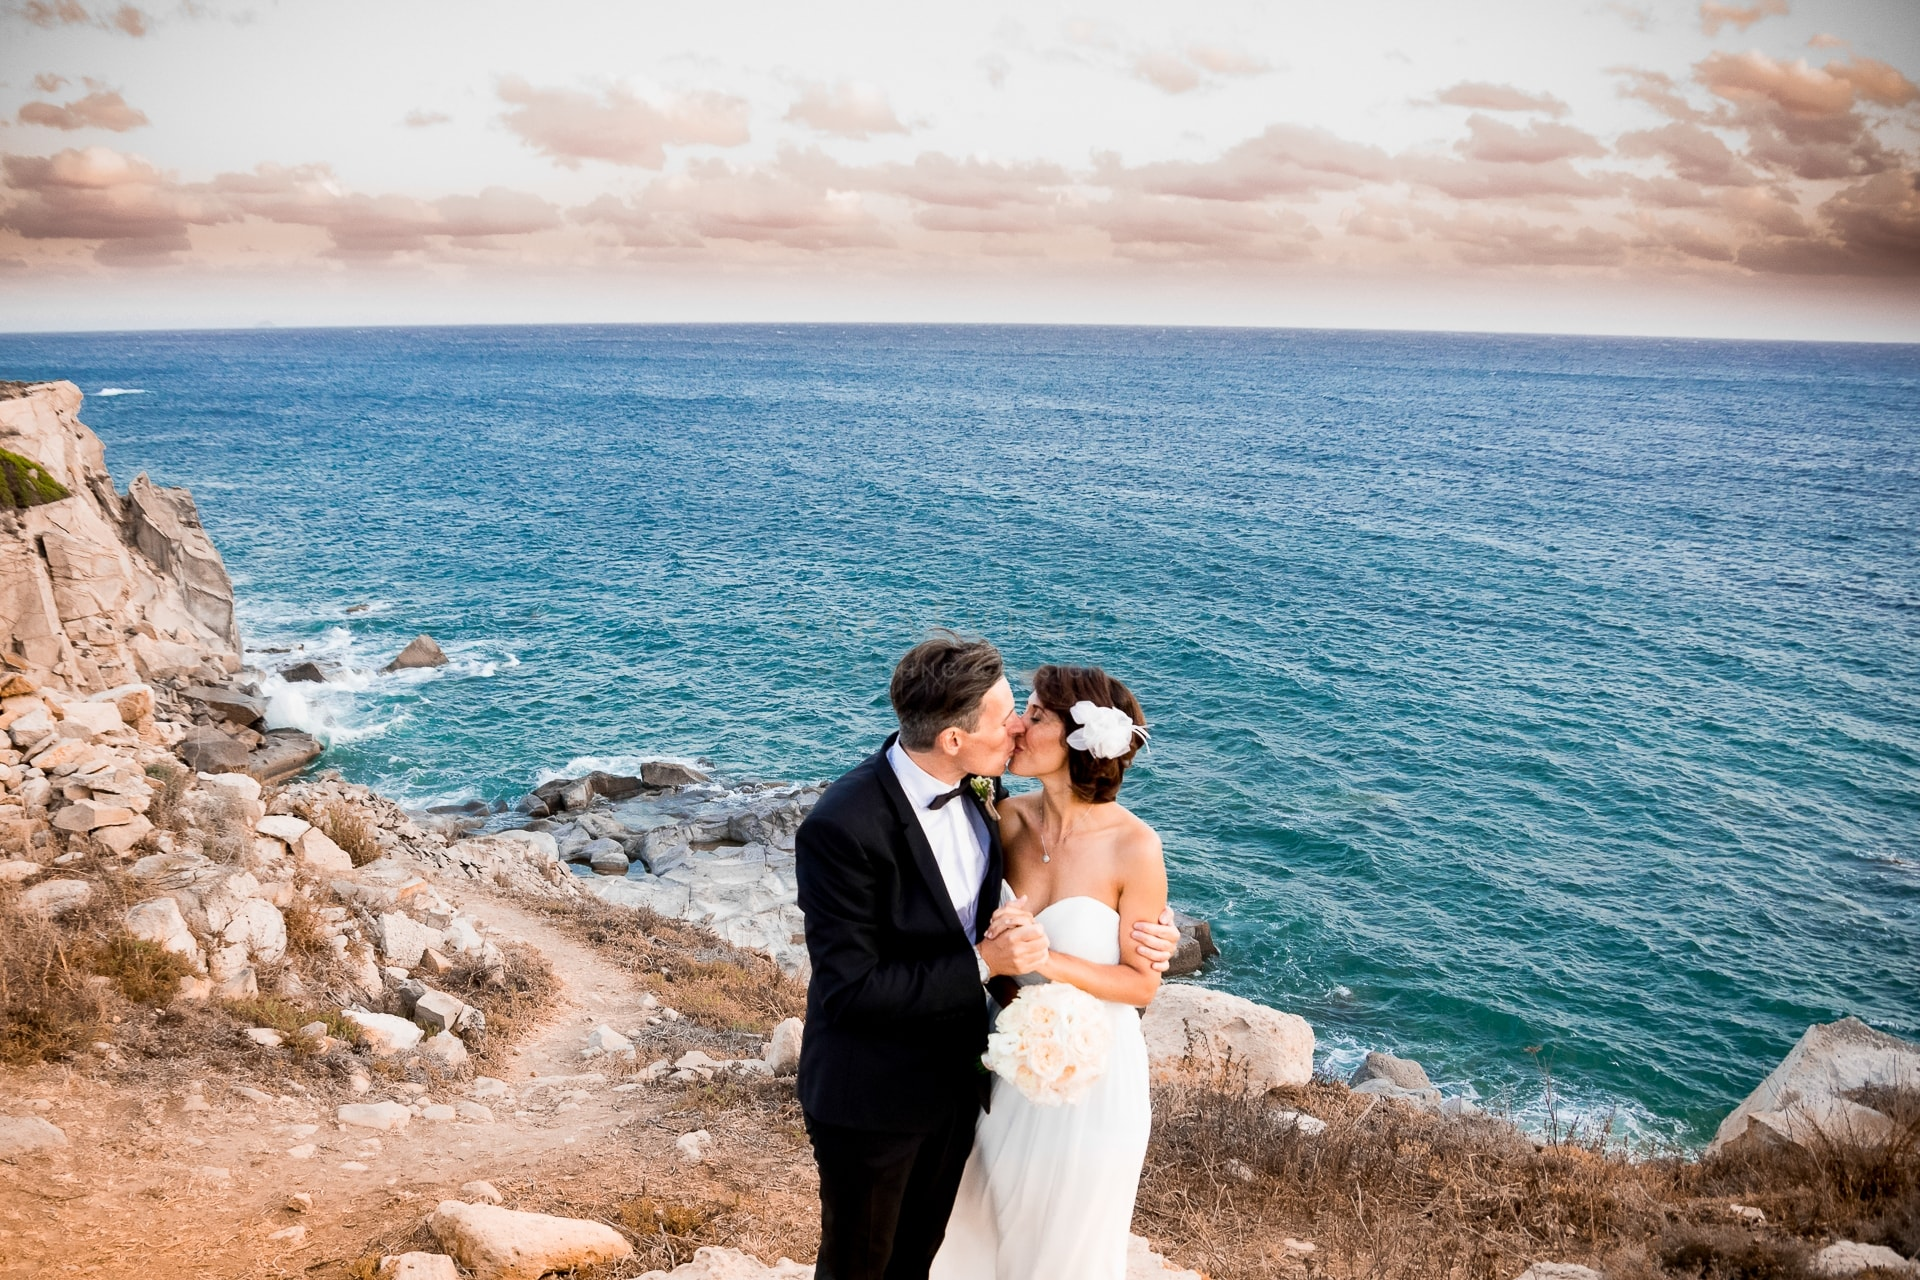 Destination wedding Sardegna Sara Events